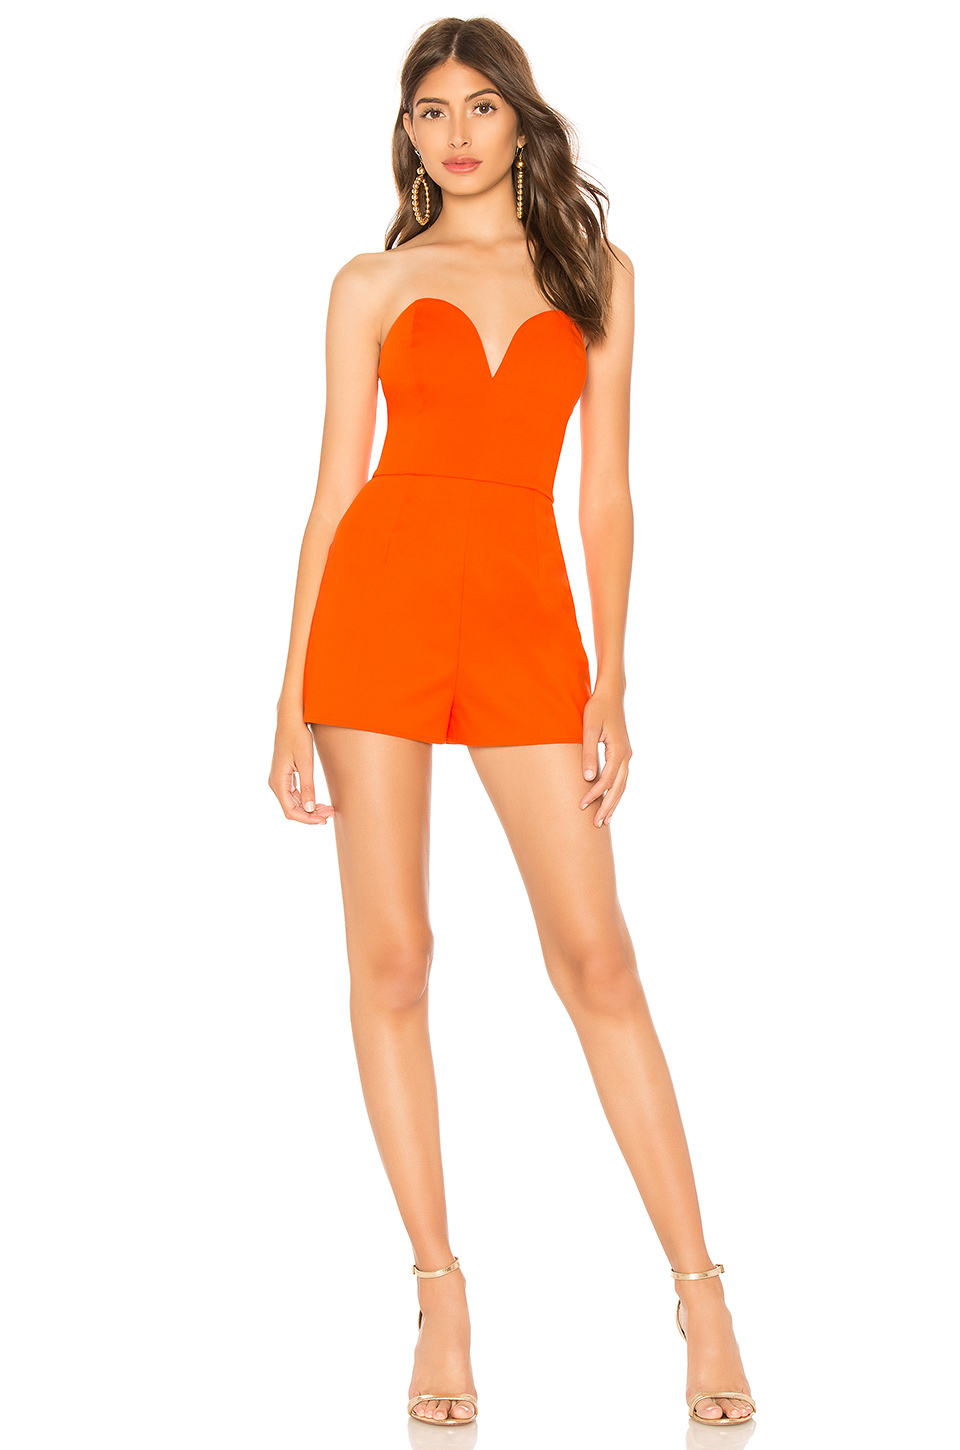 e74bbe4647a Shary Sweetheart Strapless Romper  by the way. Shary Sweetheart Strapless  Romper ...